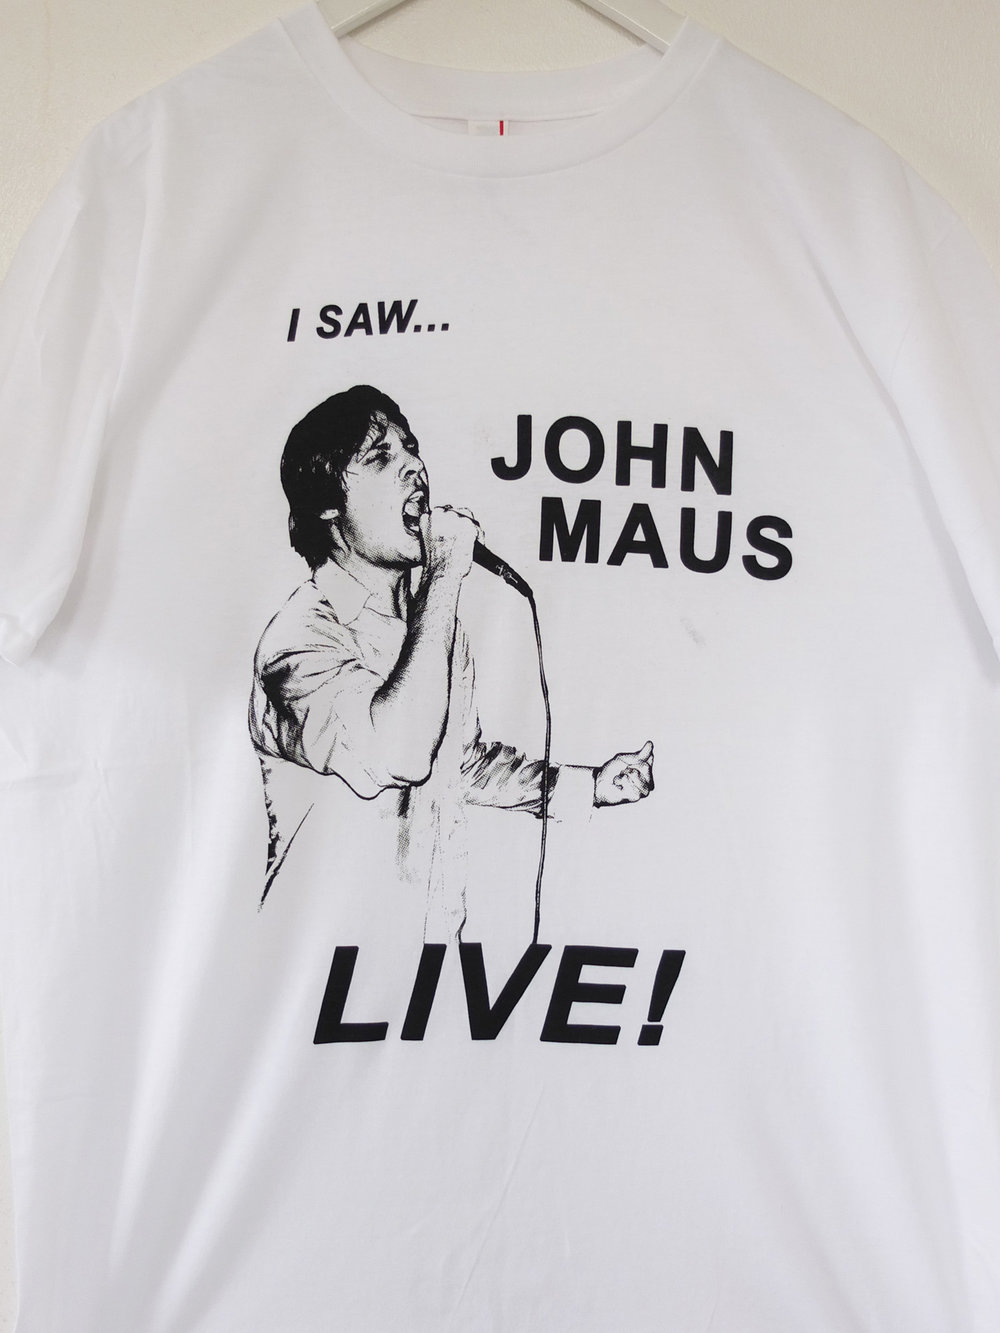 John Maus Tees The Positive Press Water Based Screen Printing London